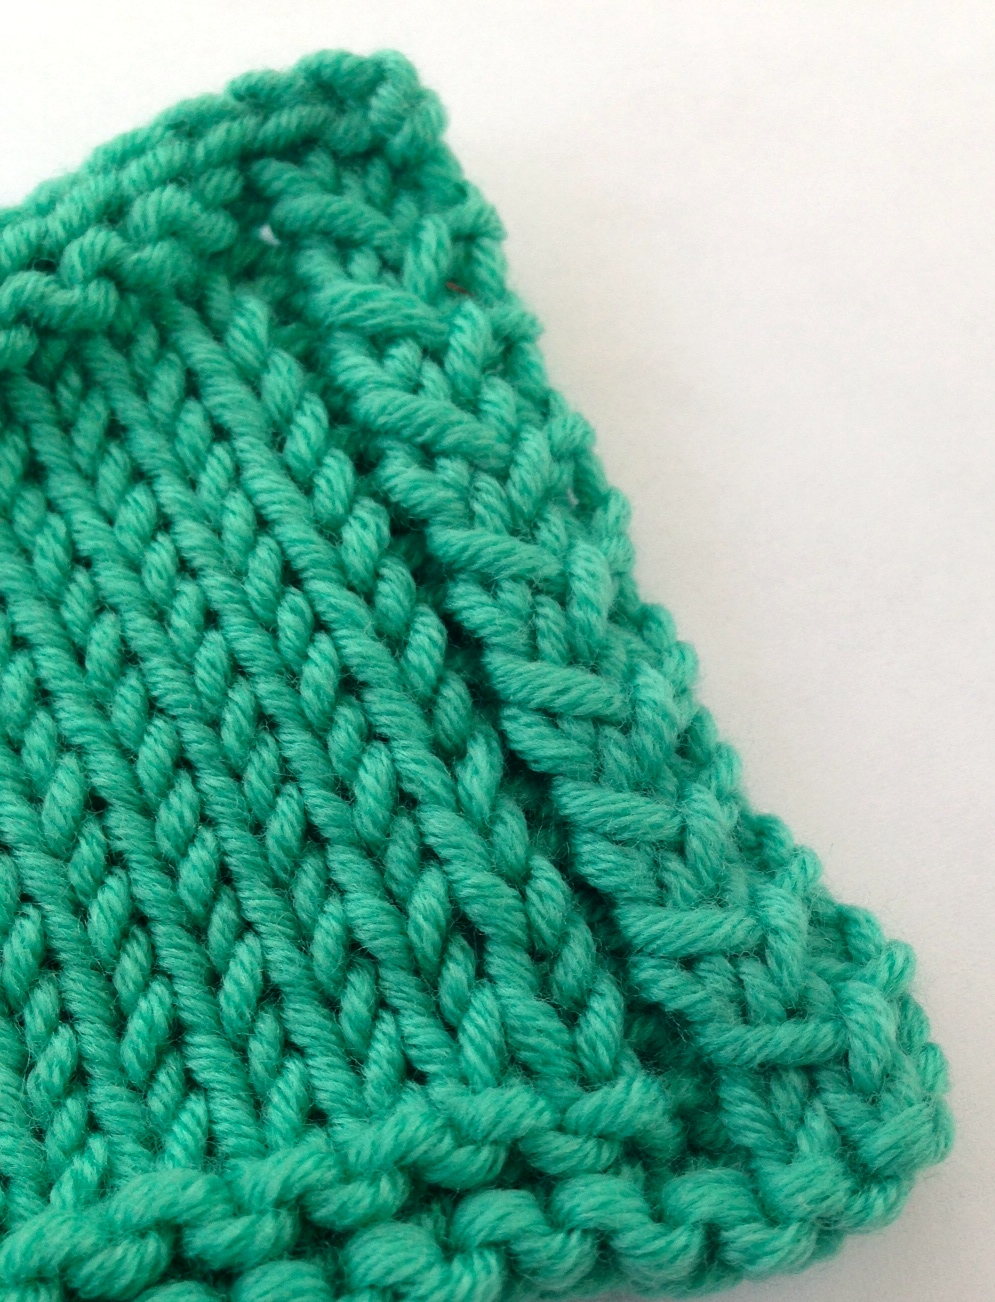 Knitting Edges Garter Stitch : These stitches will instantly improve your knit edges